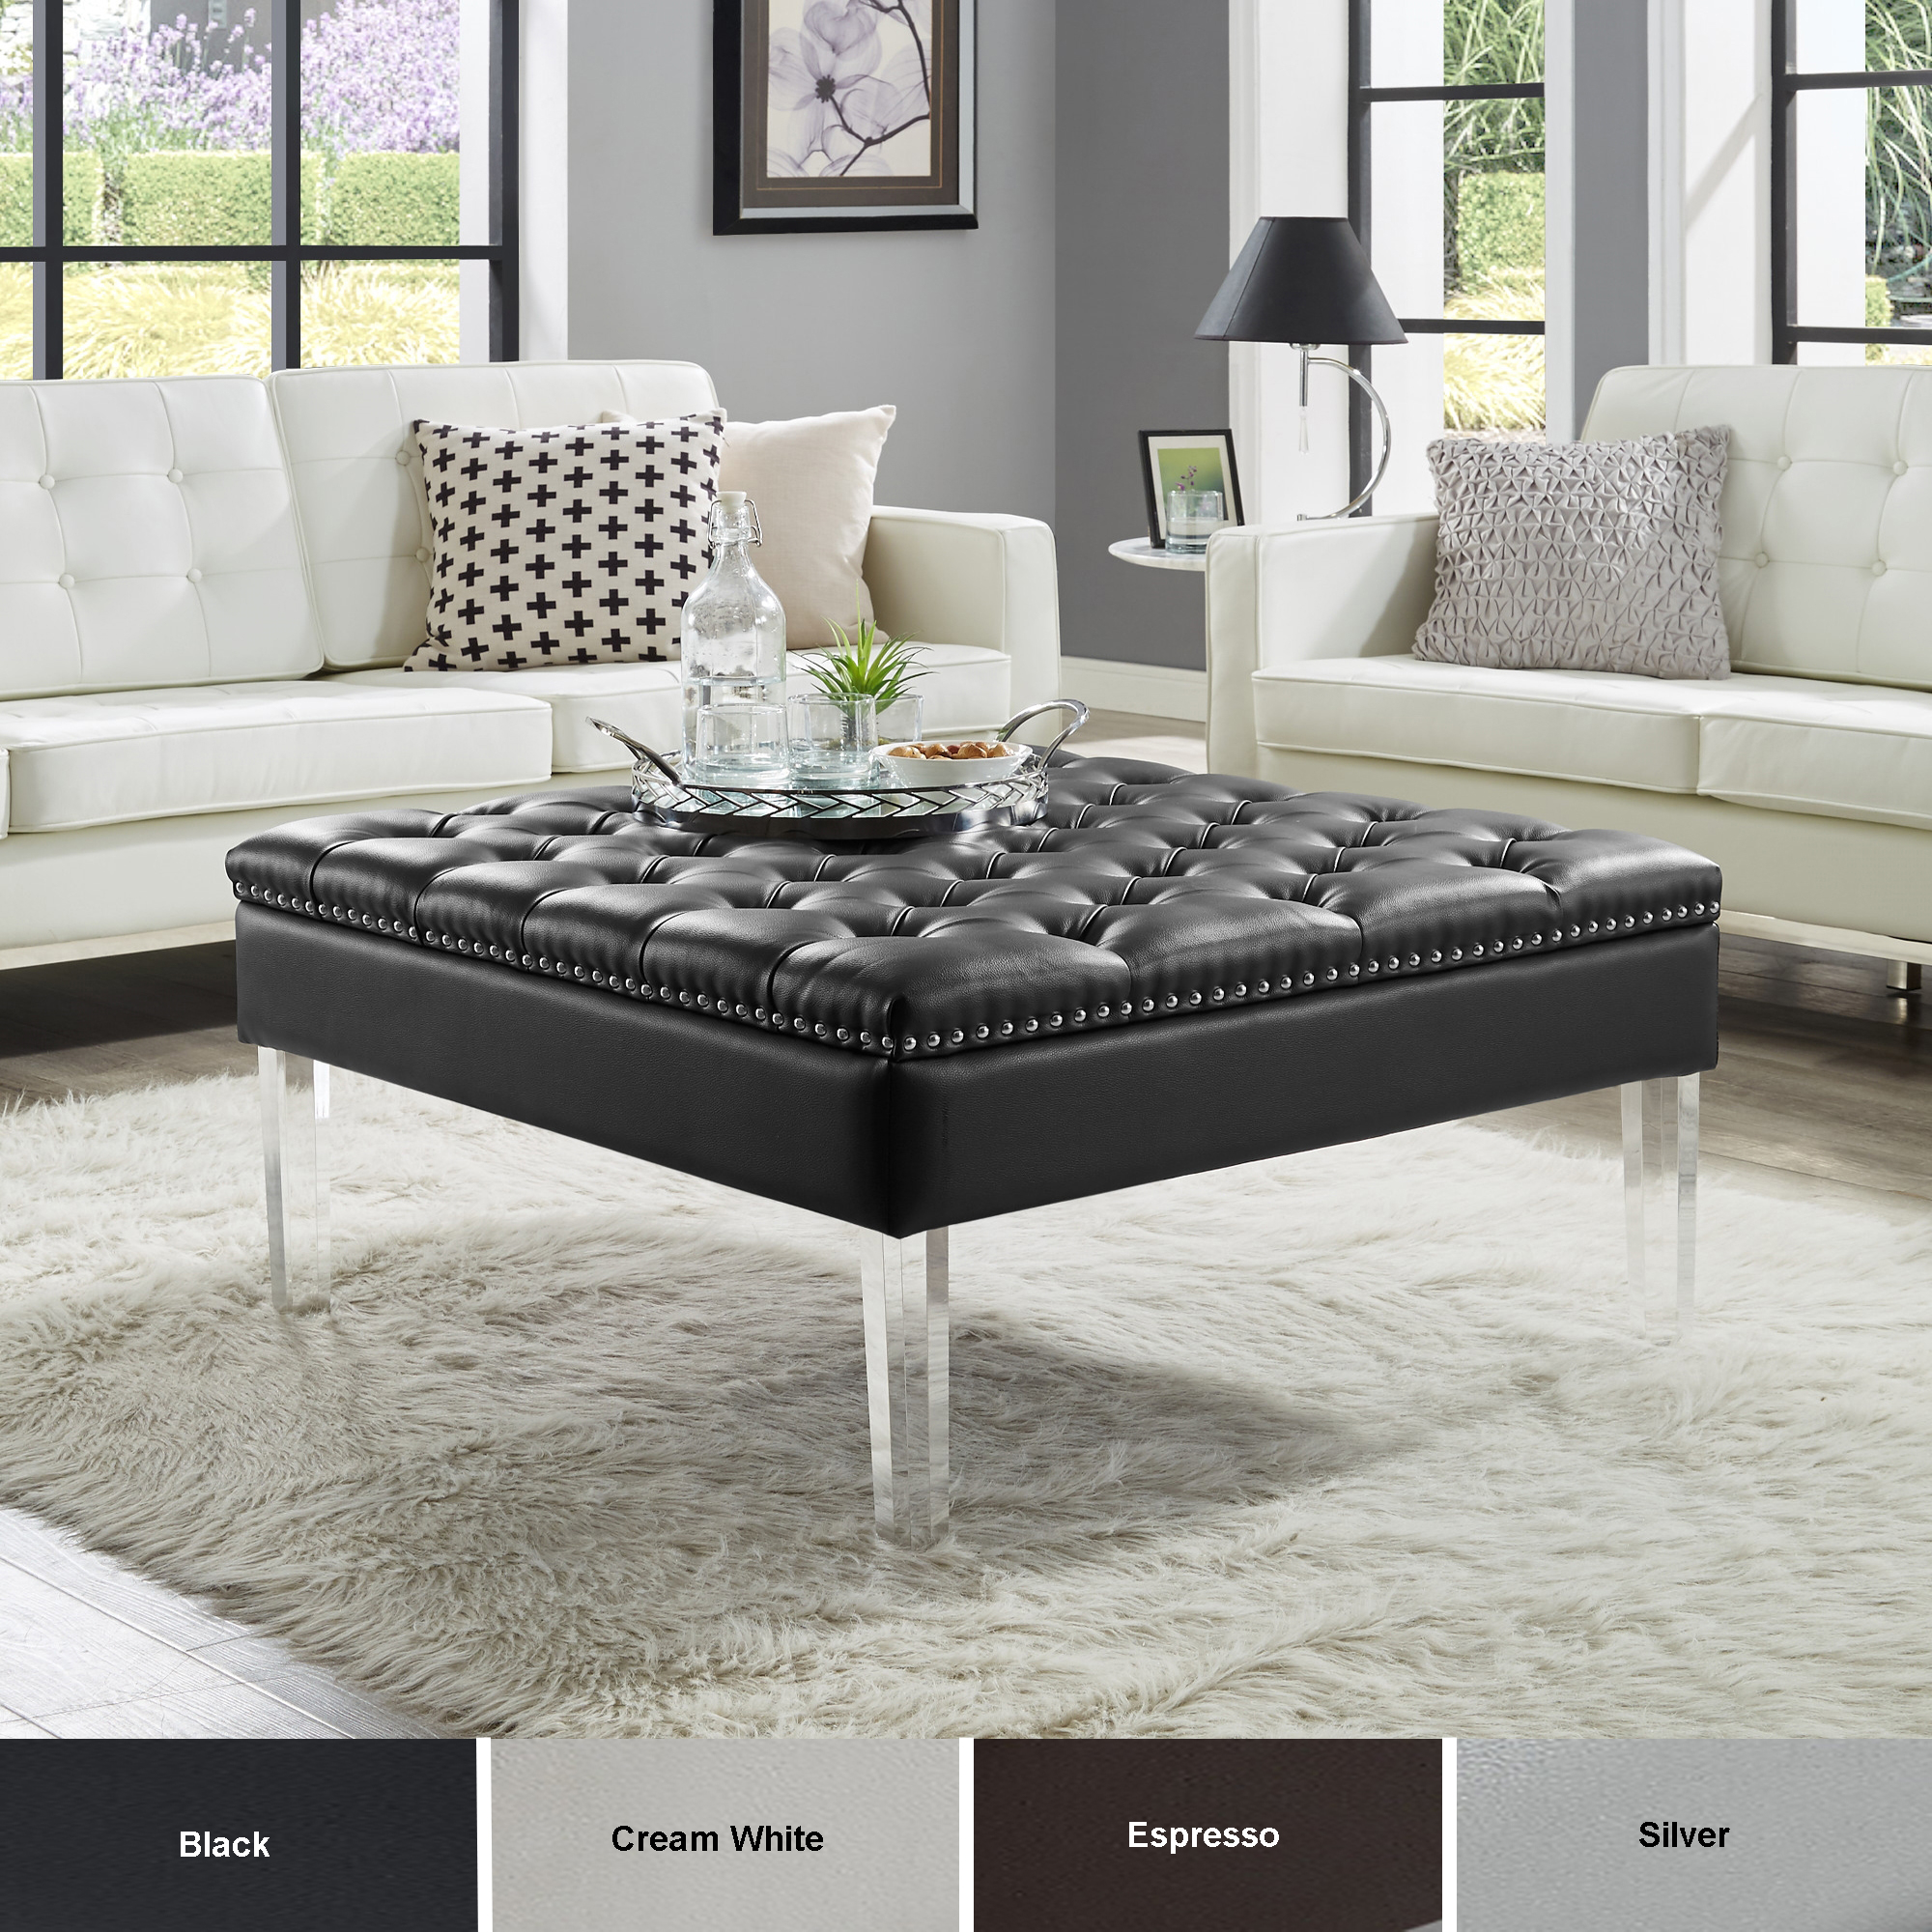 Homespot Spade Pu Leather Ottoman Coffee Table Button Tufted within measurements 2000 X 2000